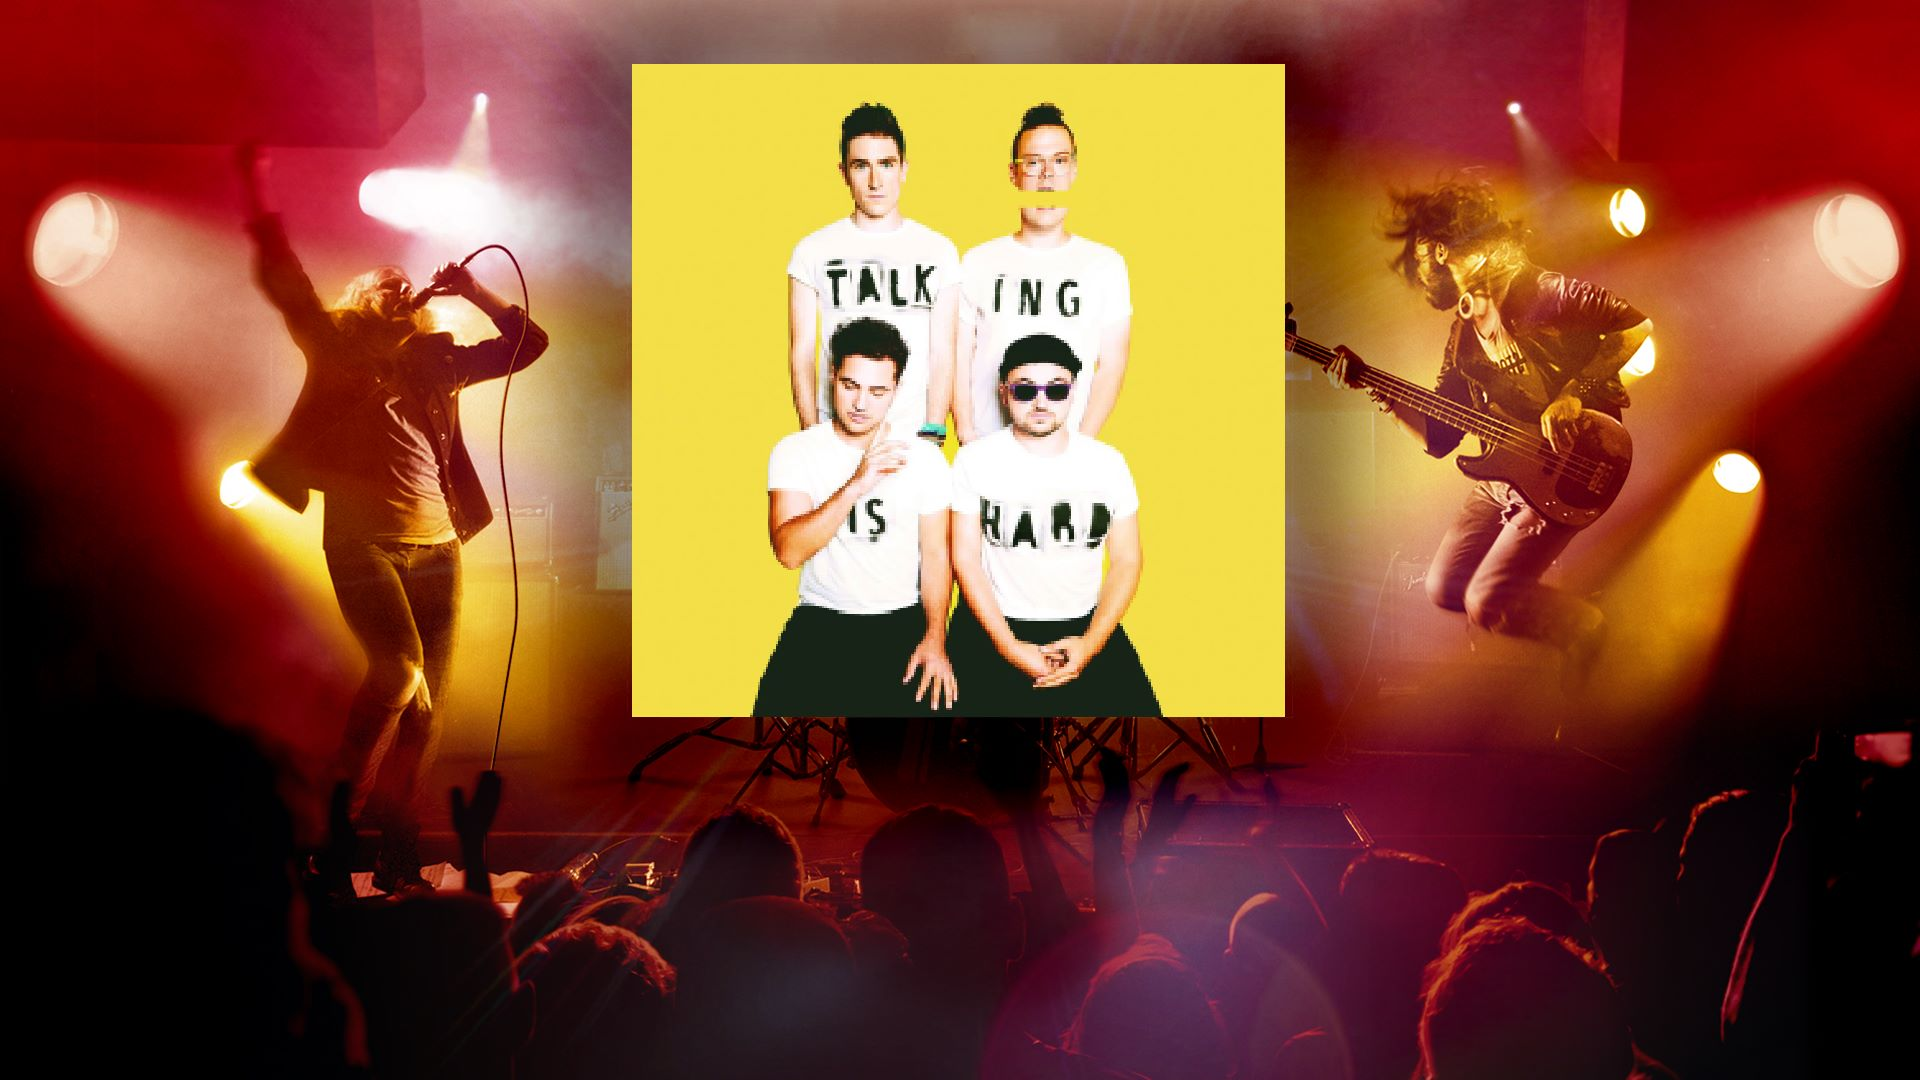 shut up and dance mp3 download free